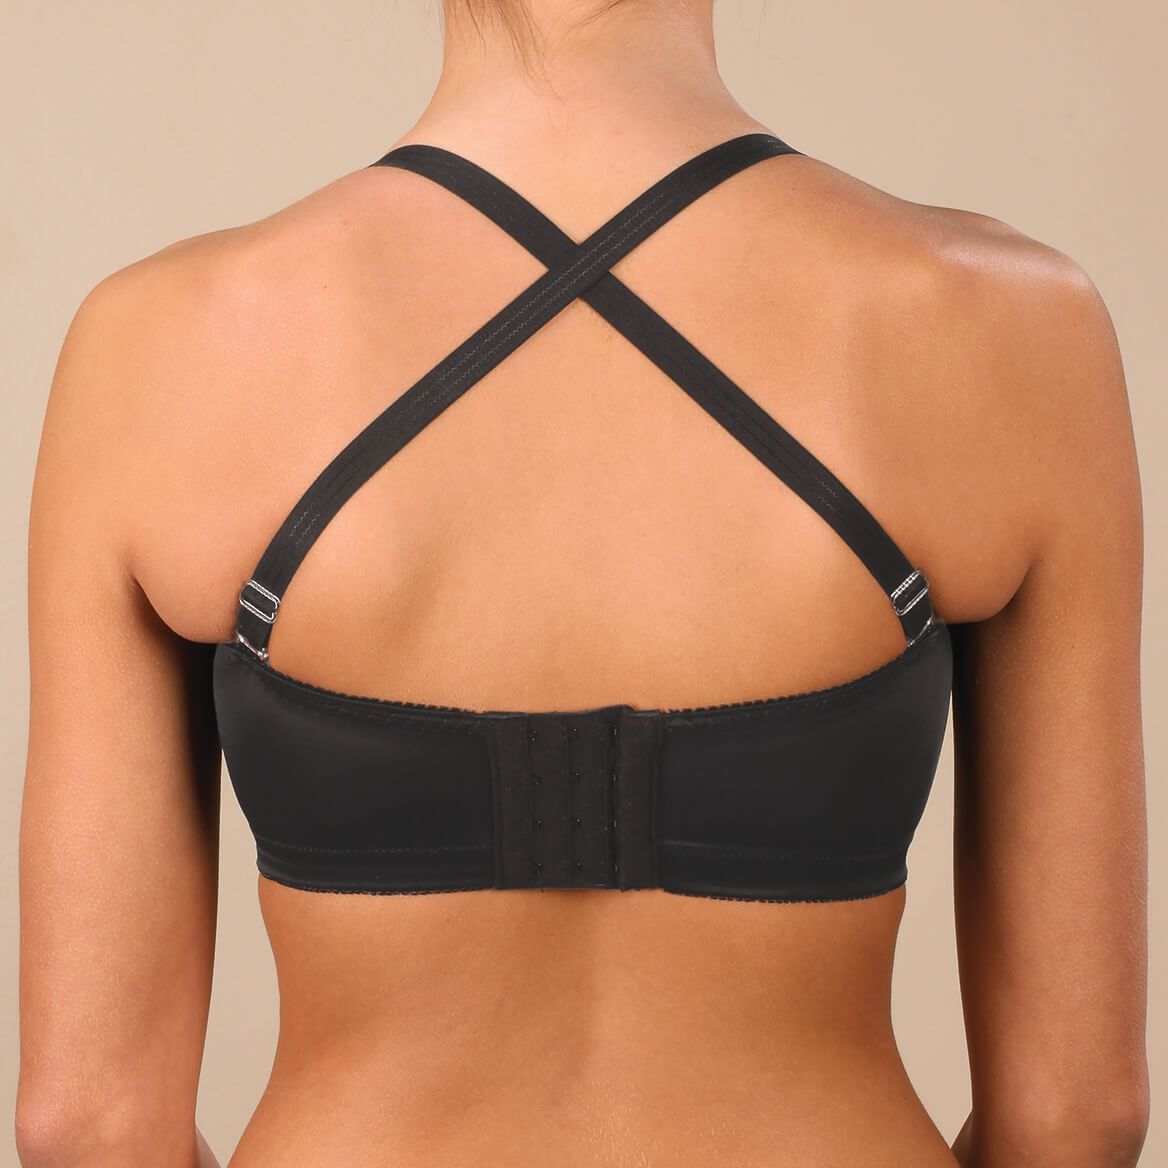 Easy Comforts Style™ Strapless Lace  Bra w/Removable Straps-354373